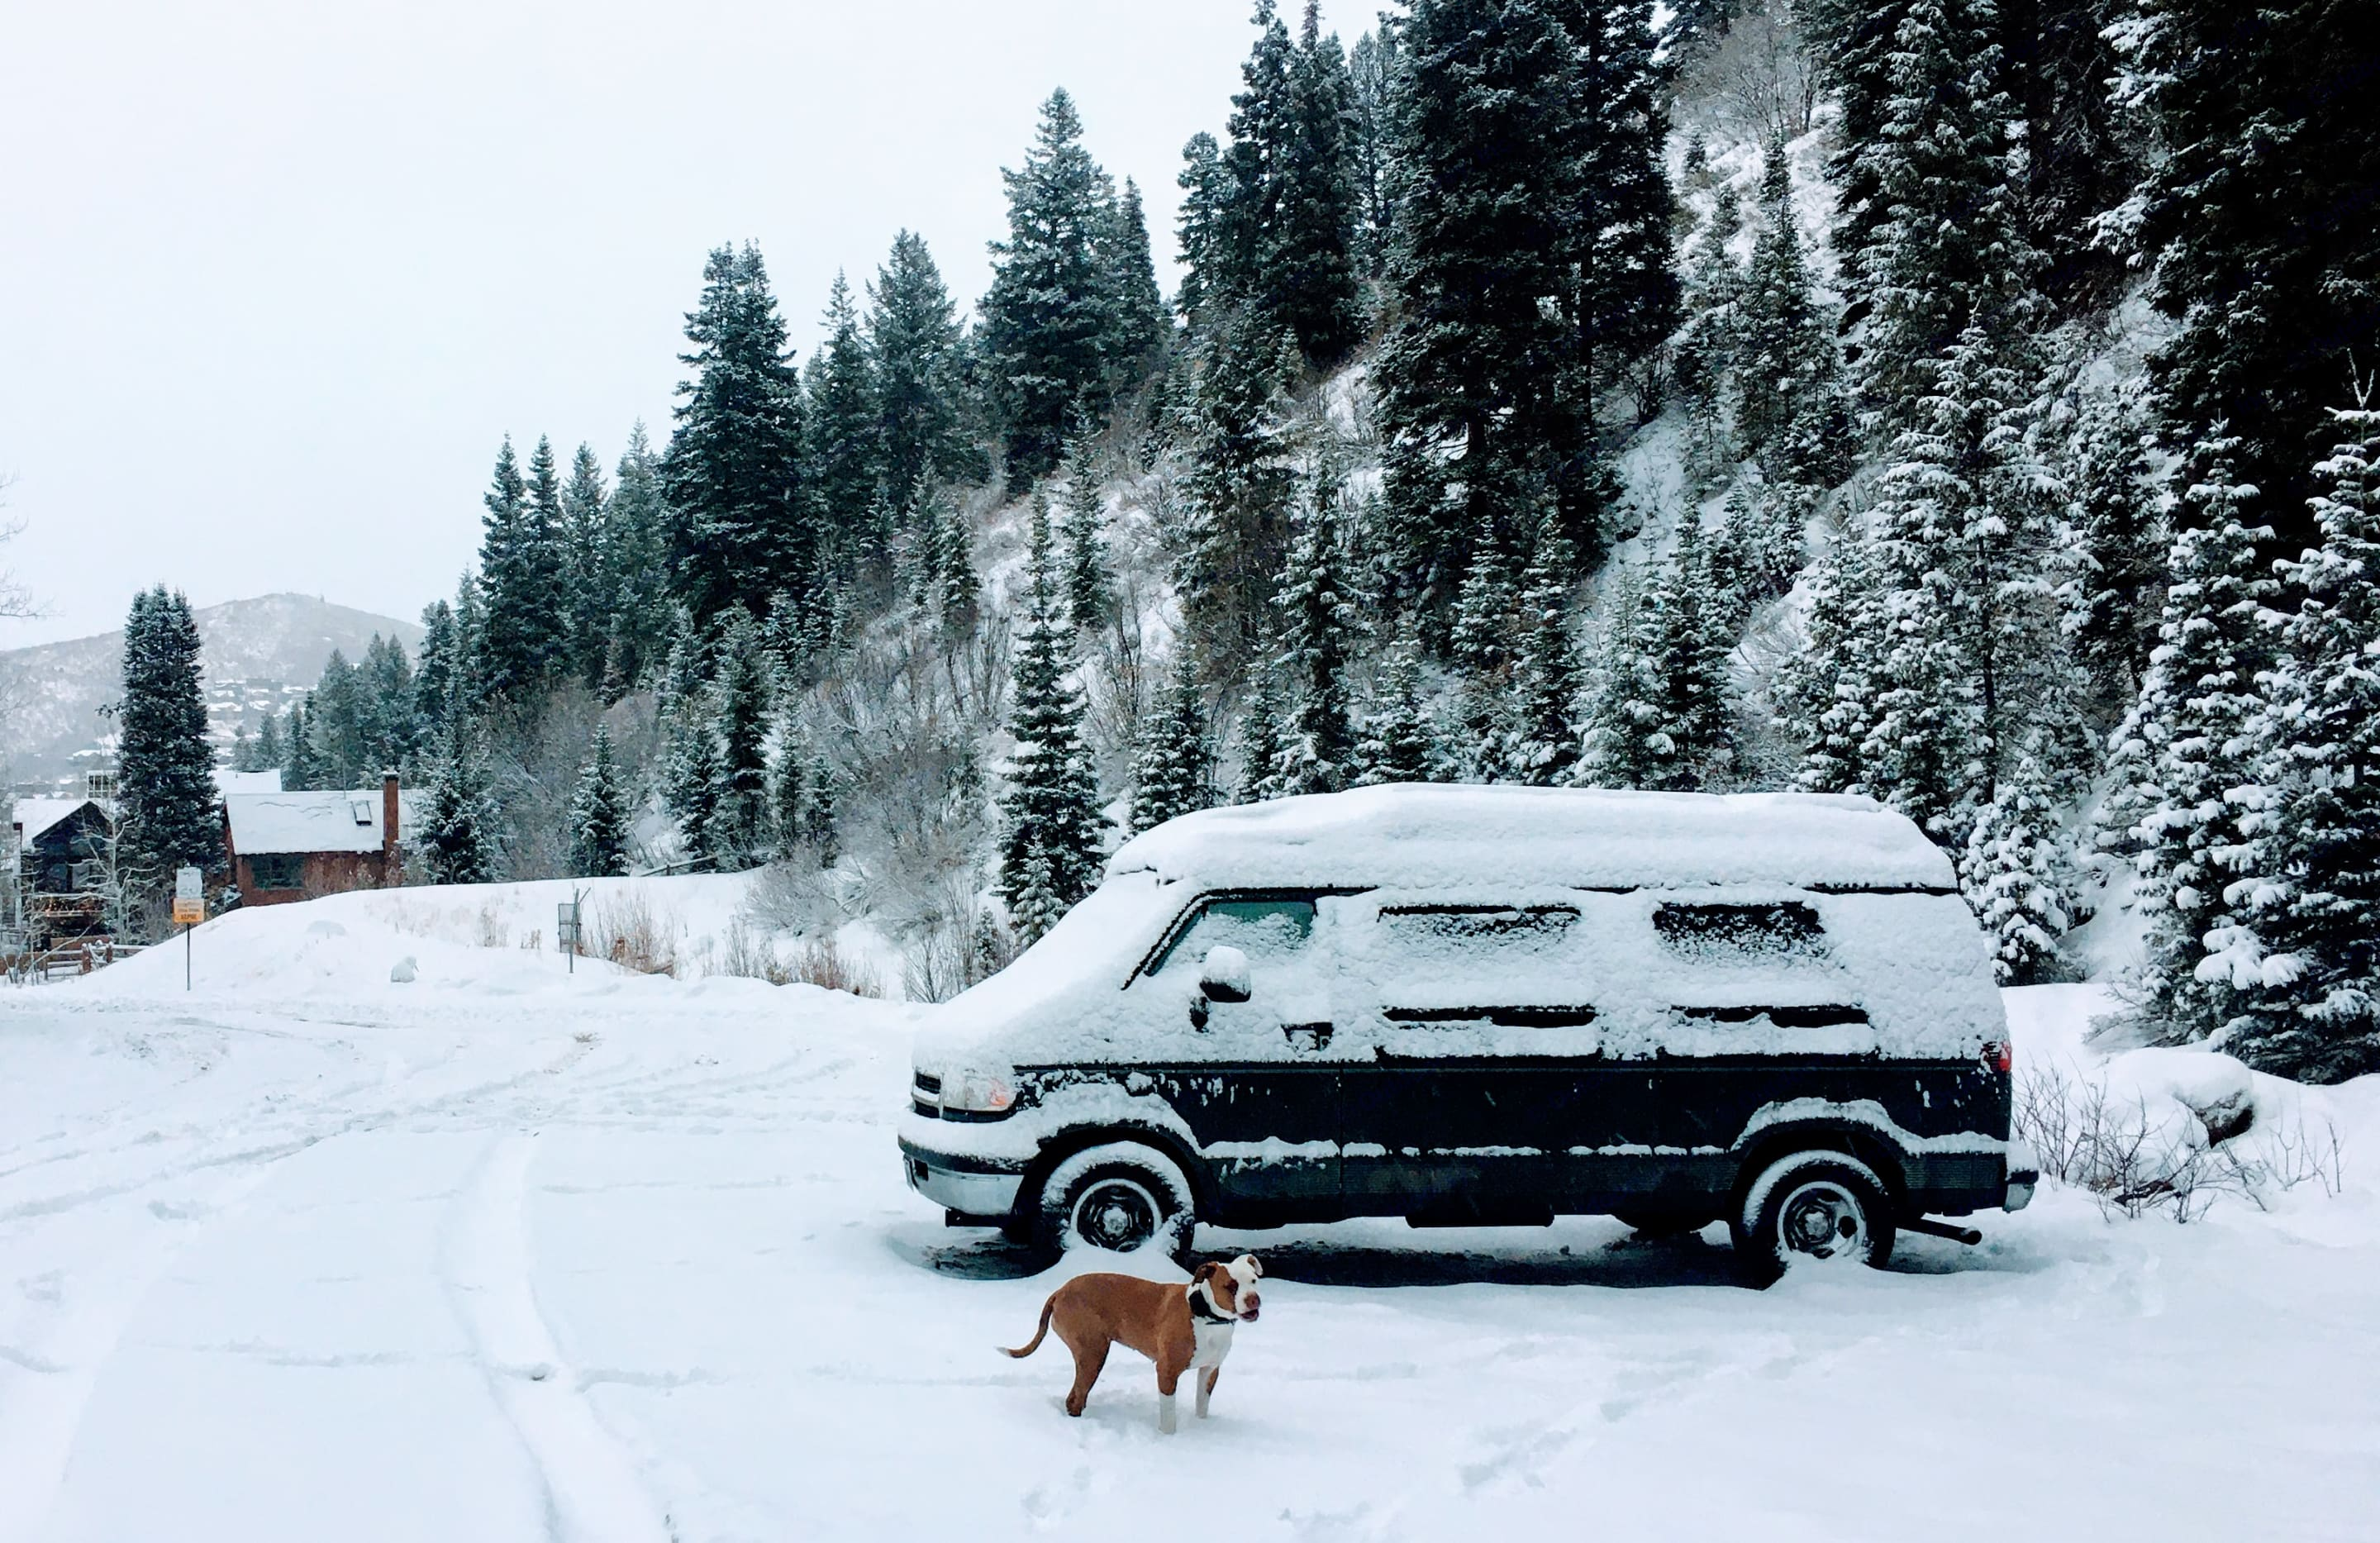 Get lost in a winter wonderland - Ramsie won't leave you stranded. Snow chains included!. Dodge Ram 2500 Van 1997